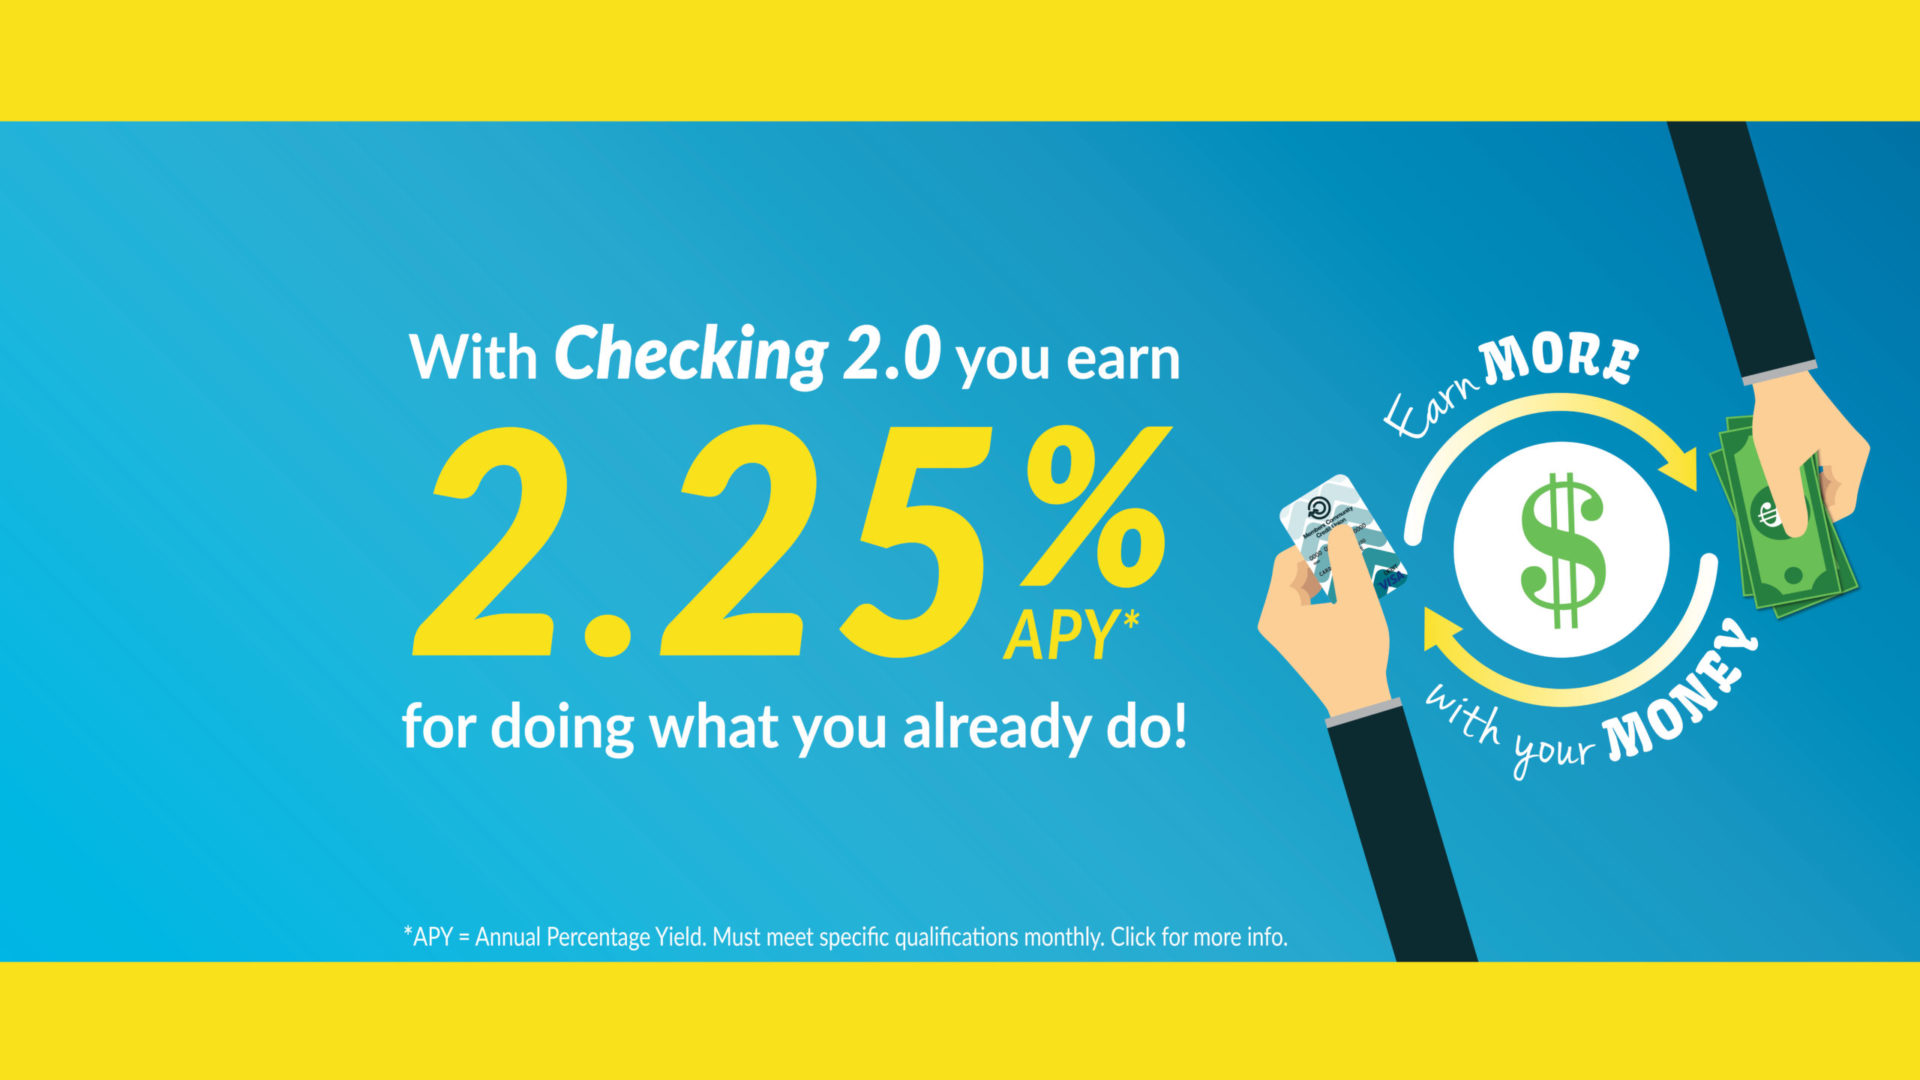 With Checking 2.0 you earn 2.25% Annual Percentage Yield for doing what you already do! Earn more with your money. Click for more info.